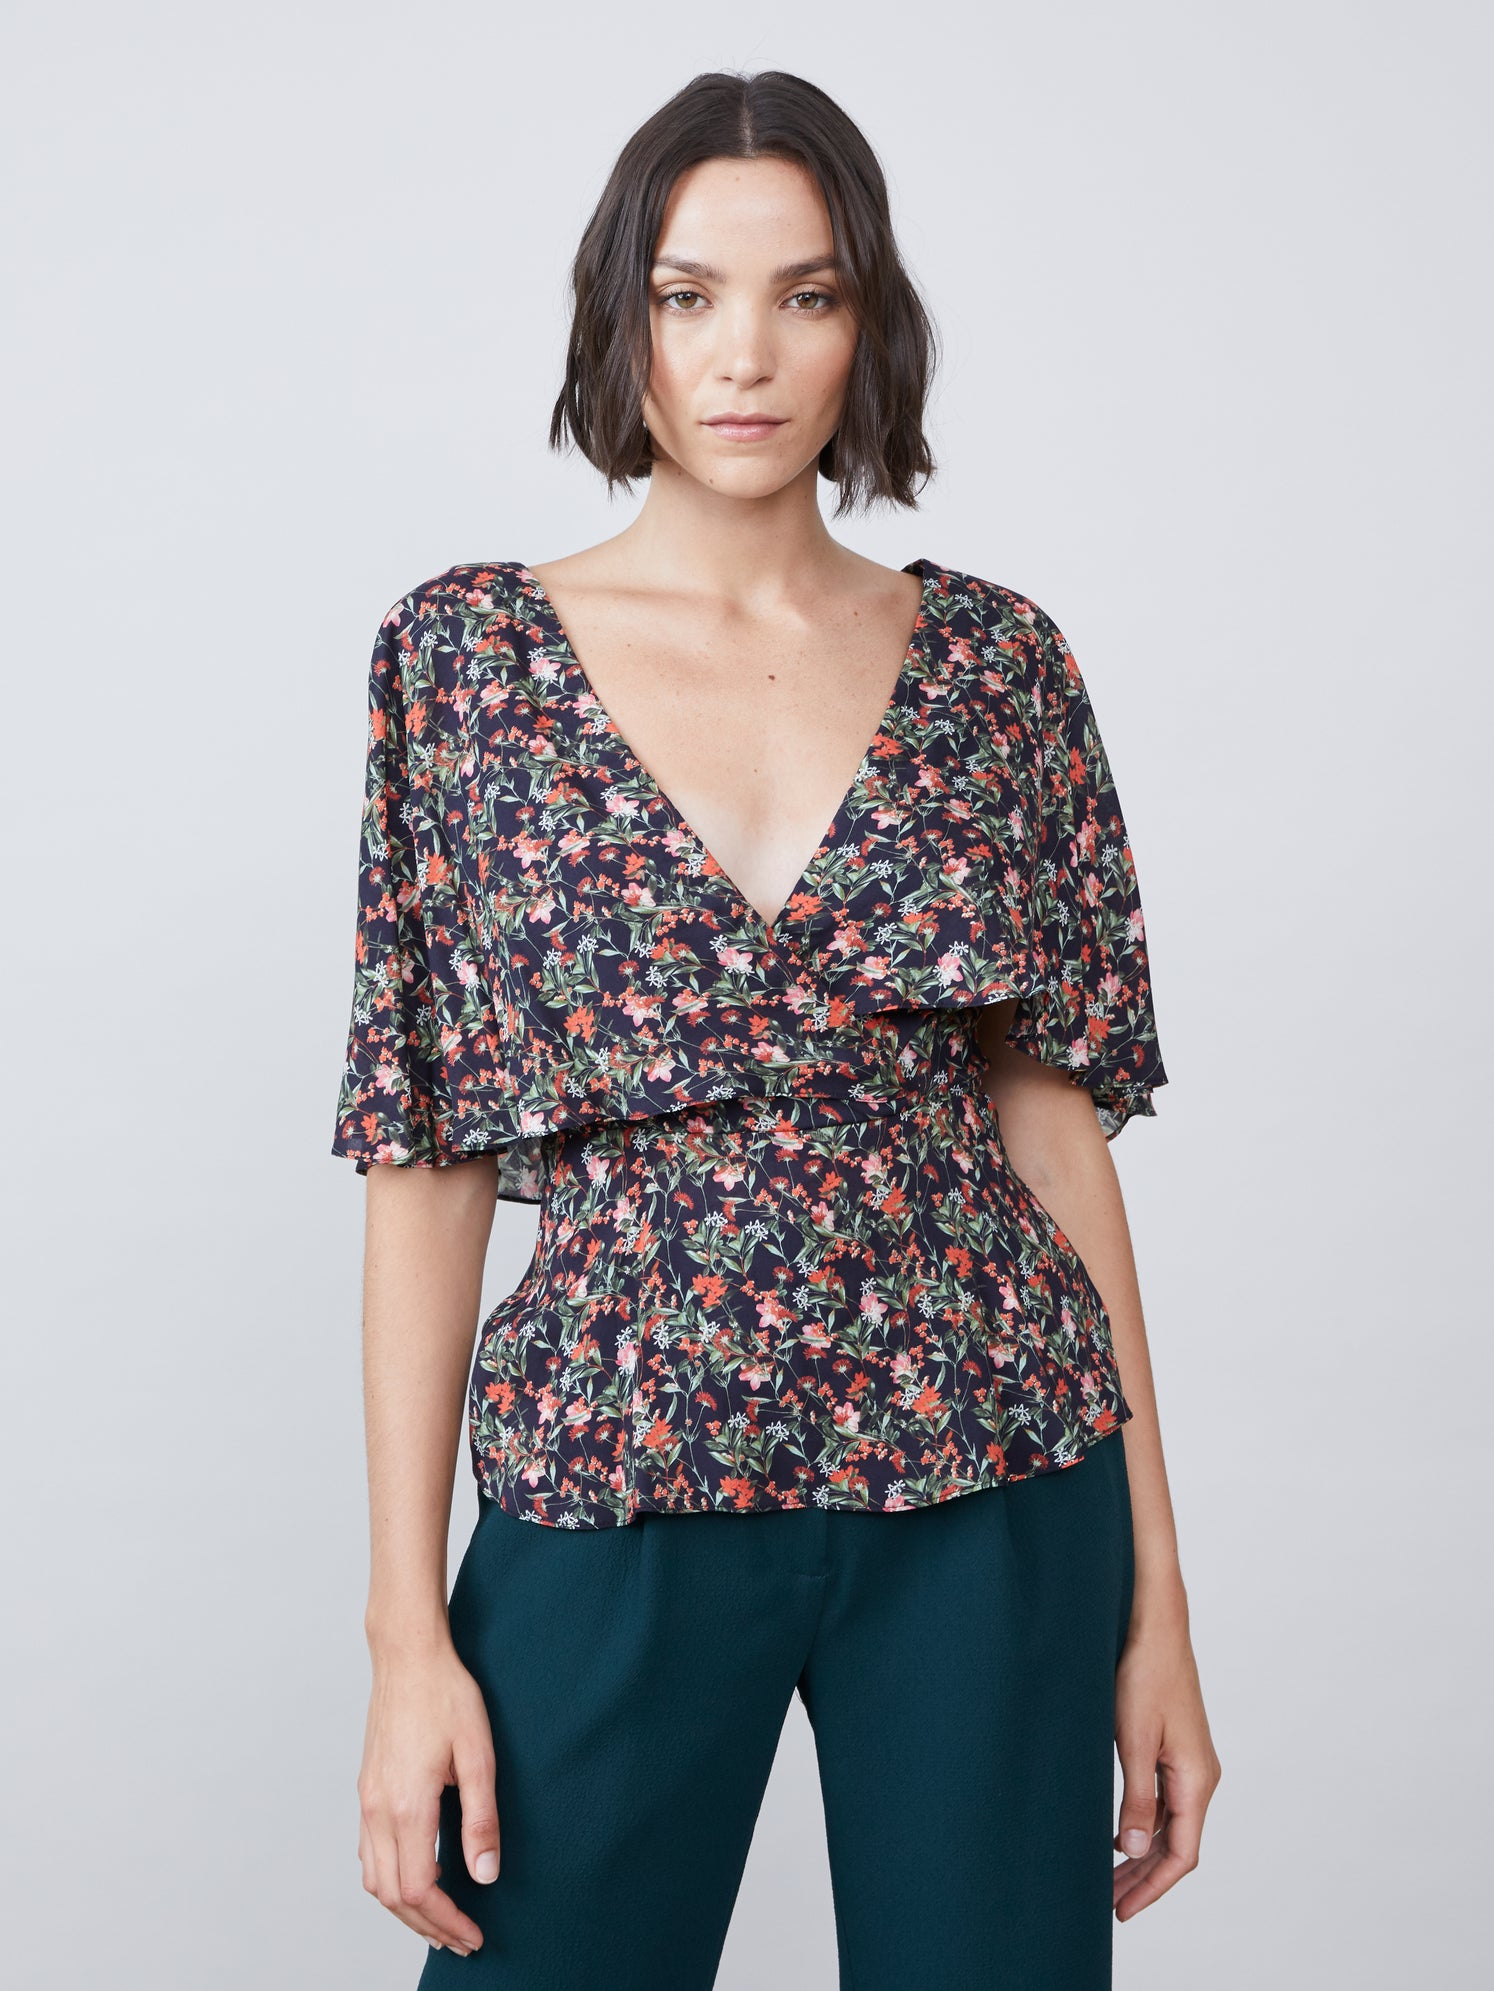 Floral print exposed cross tie back cinched waist ruched sleeves capelet top